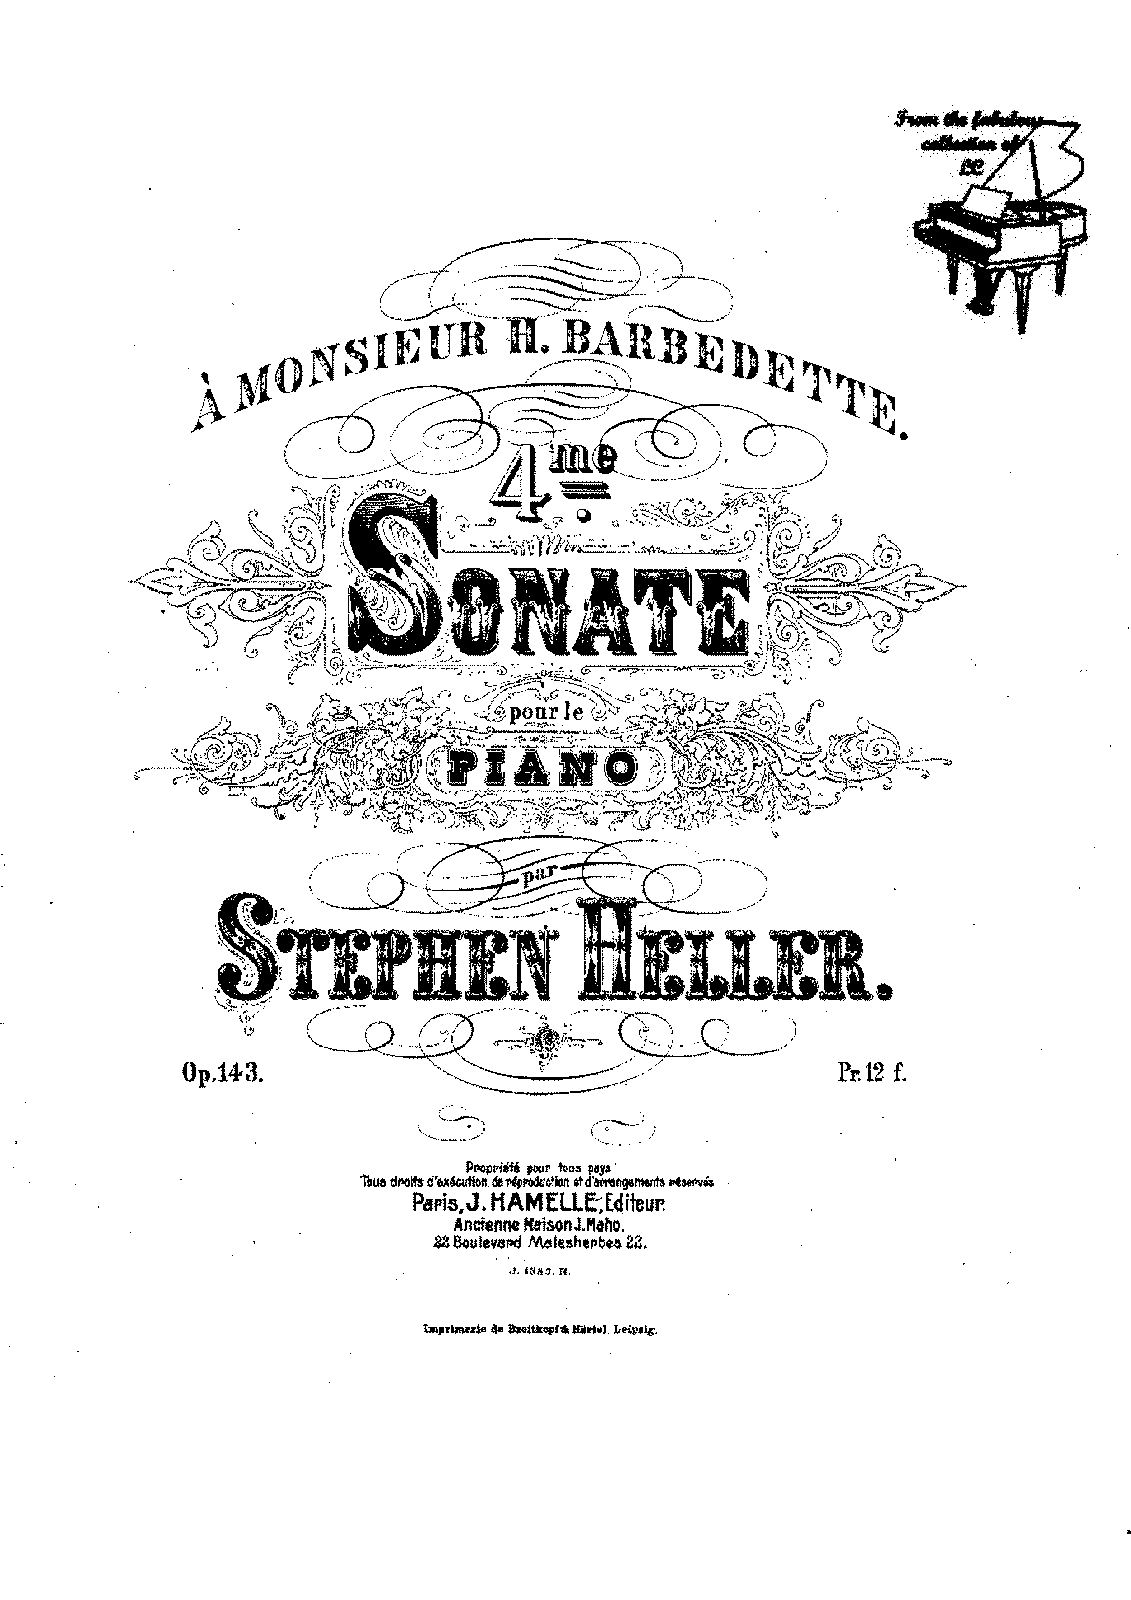 Heller - Op.143 - Piano Sonata No.4 in Bb mionr.pdf